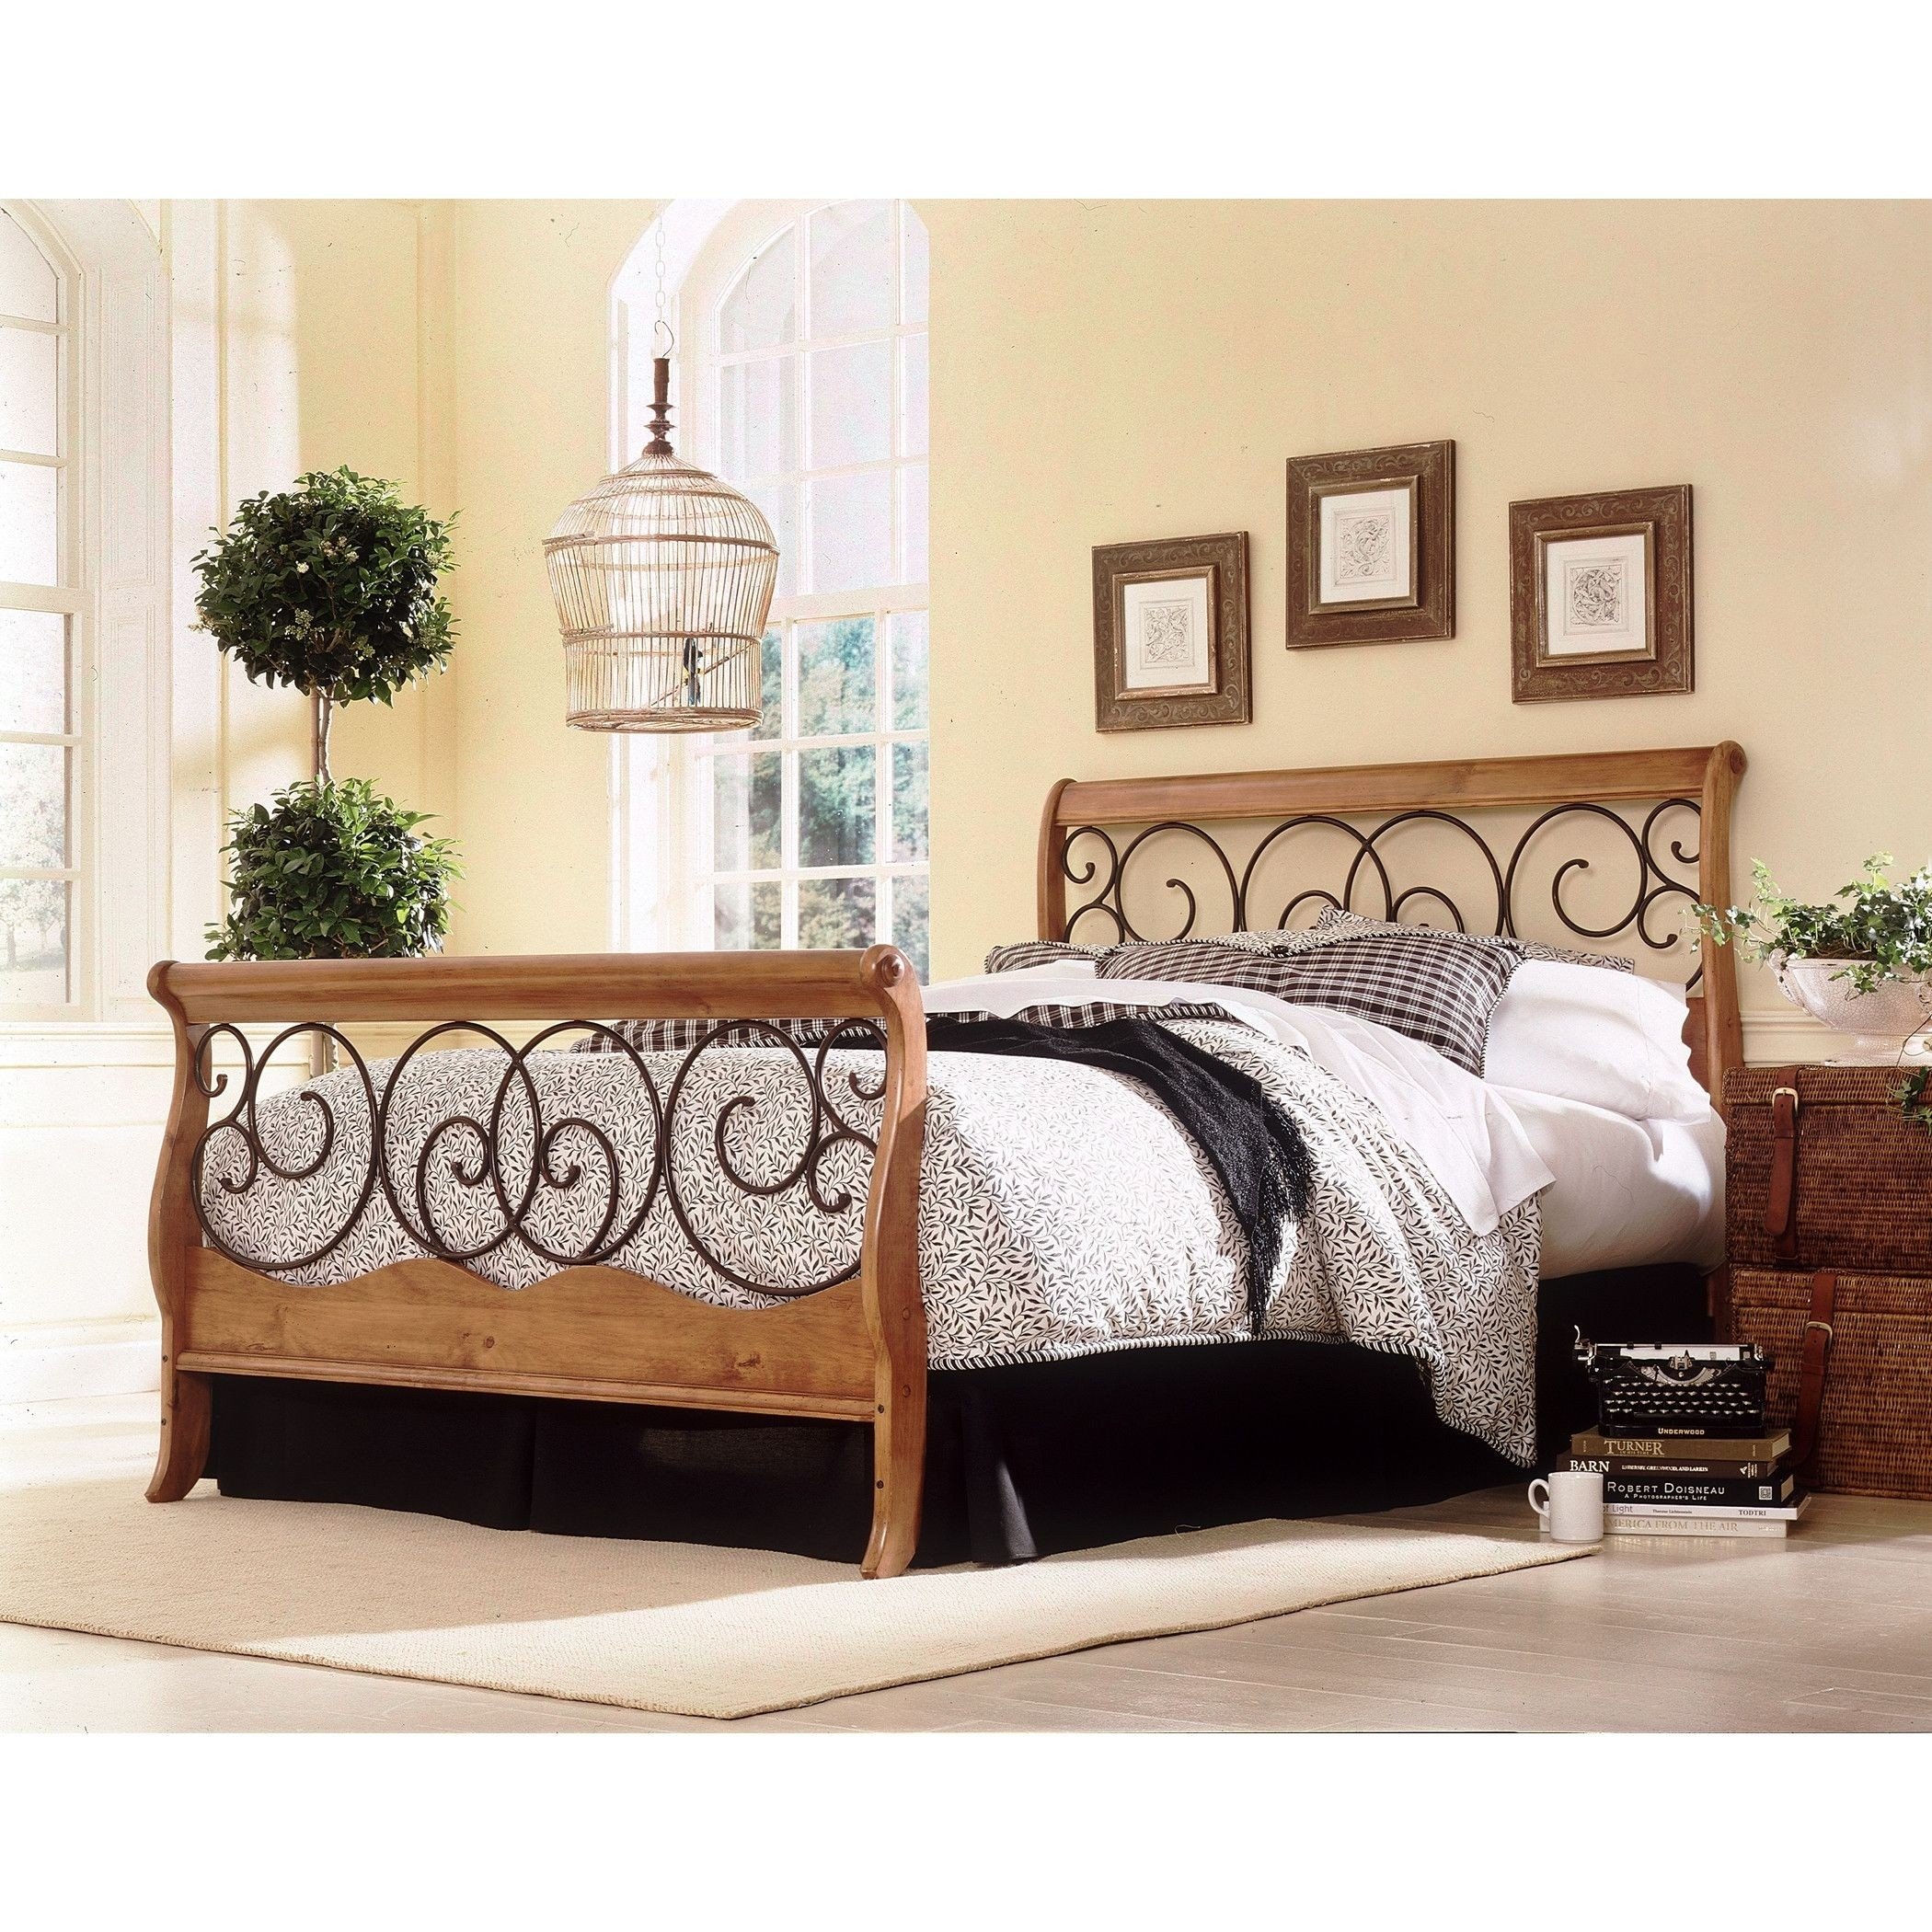 Wood And Wrought Iron Headboards Ideas On Foter